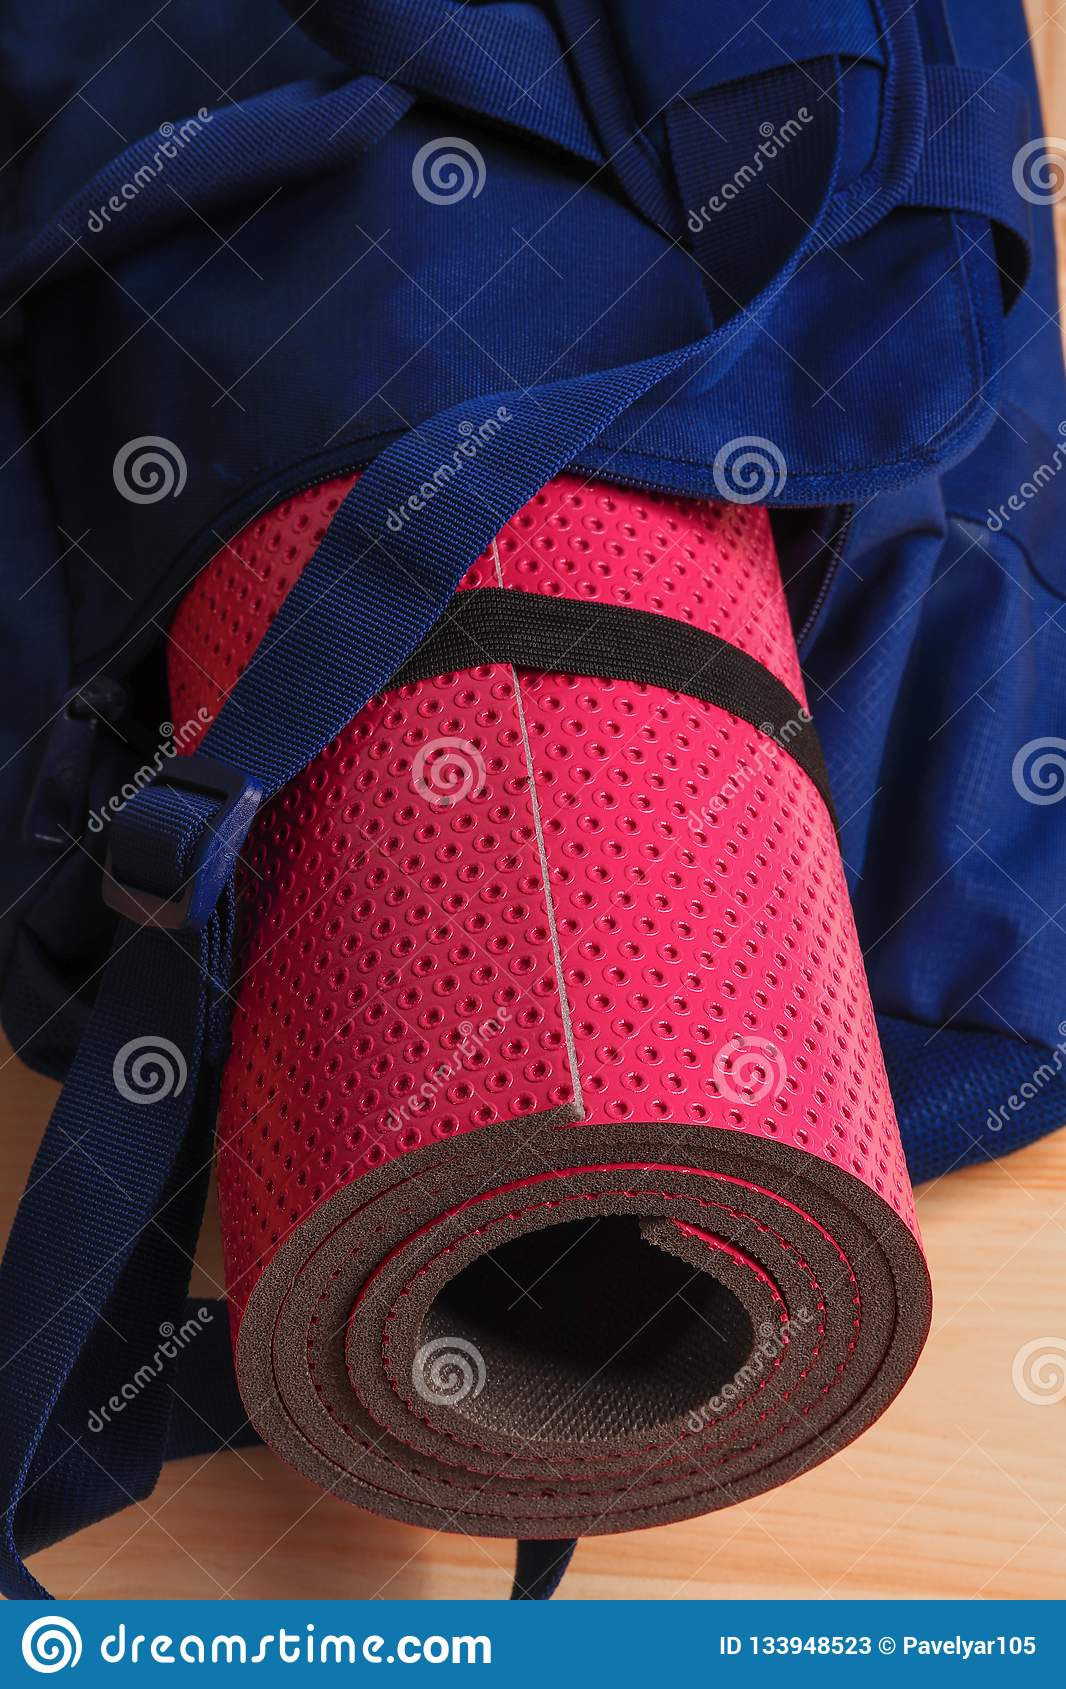 Pink Yoga Mat In A Blue Gym Bag Stock Image Image Of Pink Light 133948523